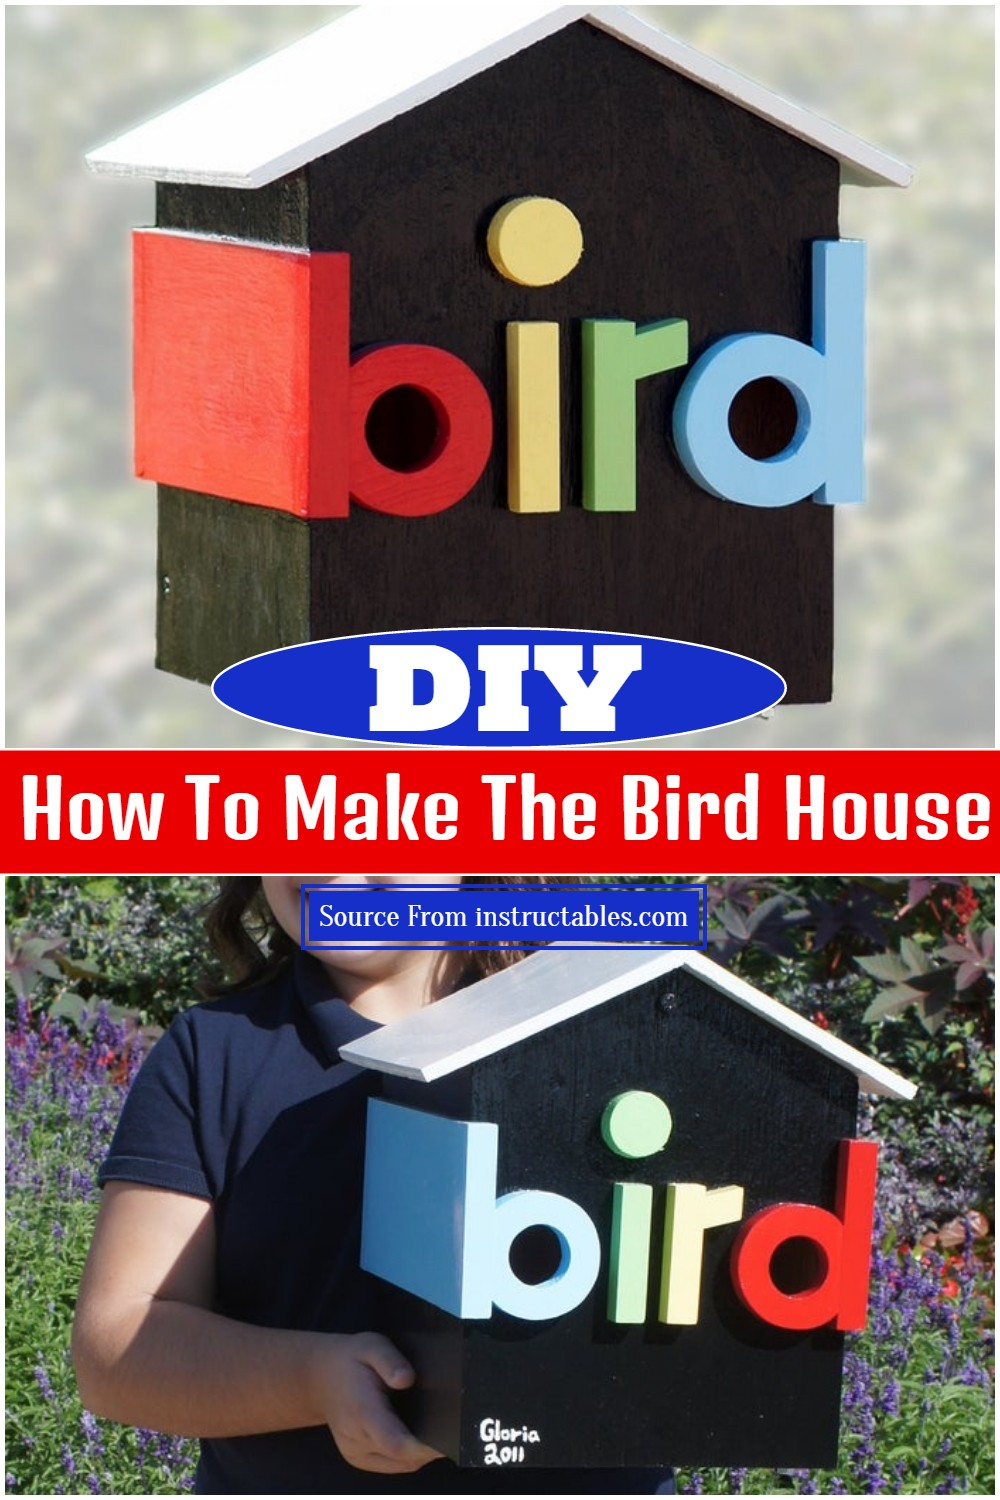 How To Make The Bird House